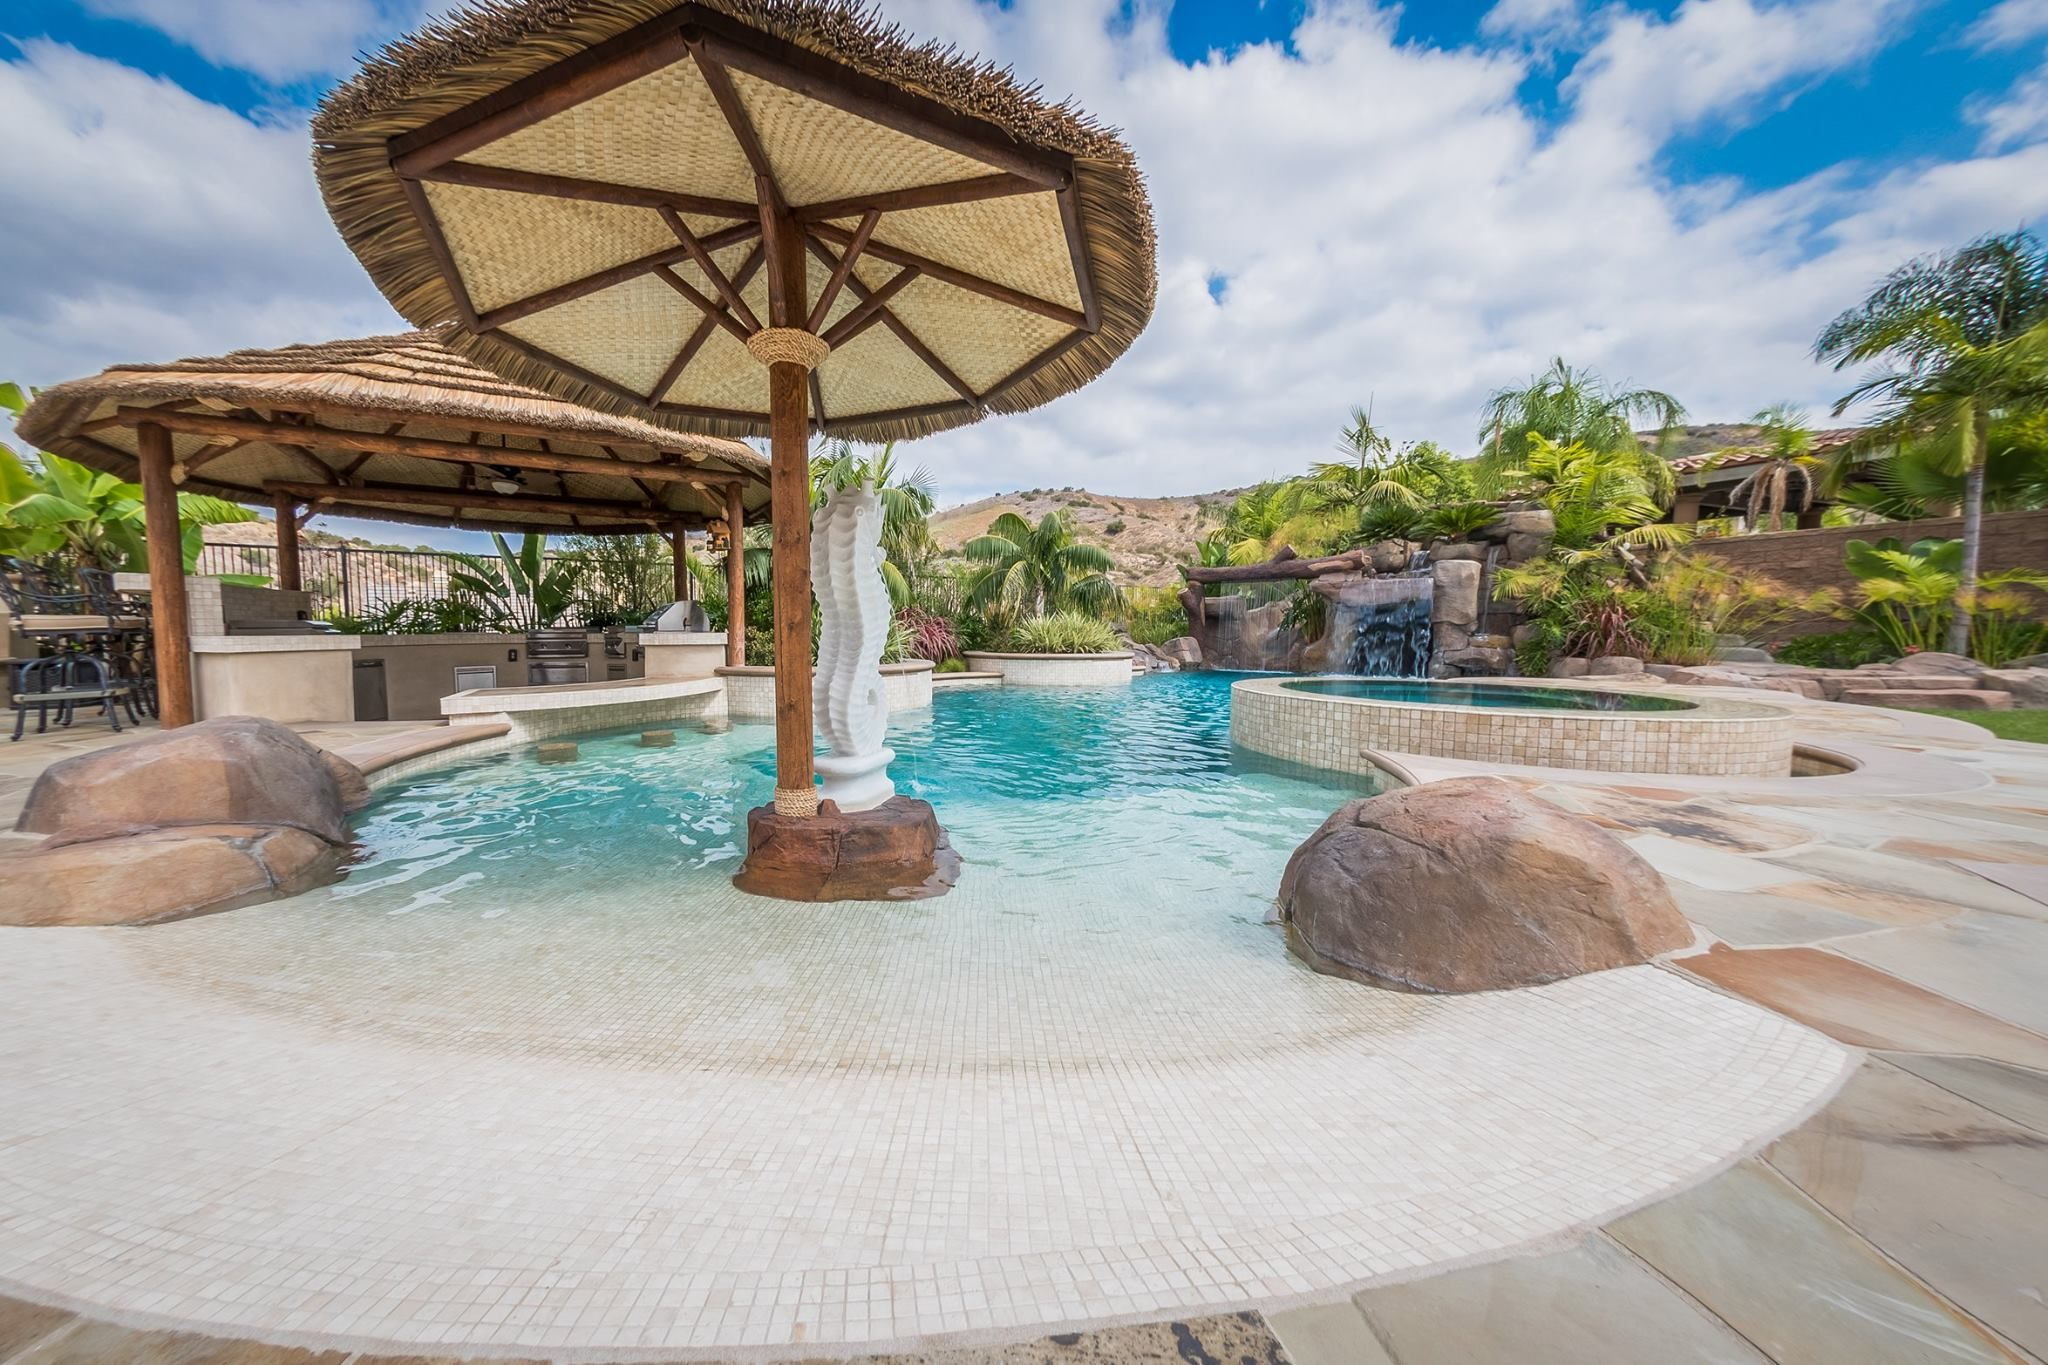 Materials Tropical Beach Entry Custom Swimming Pool With A Perimeter Flow Spa Grotto Rock Slide And Waterfalls Outdoor Kitchen Swim Up Bar